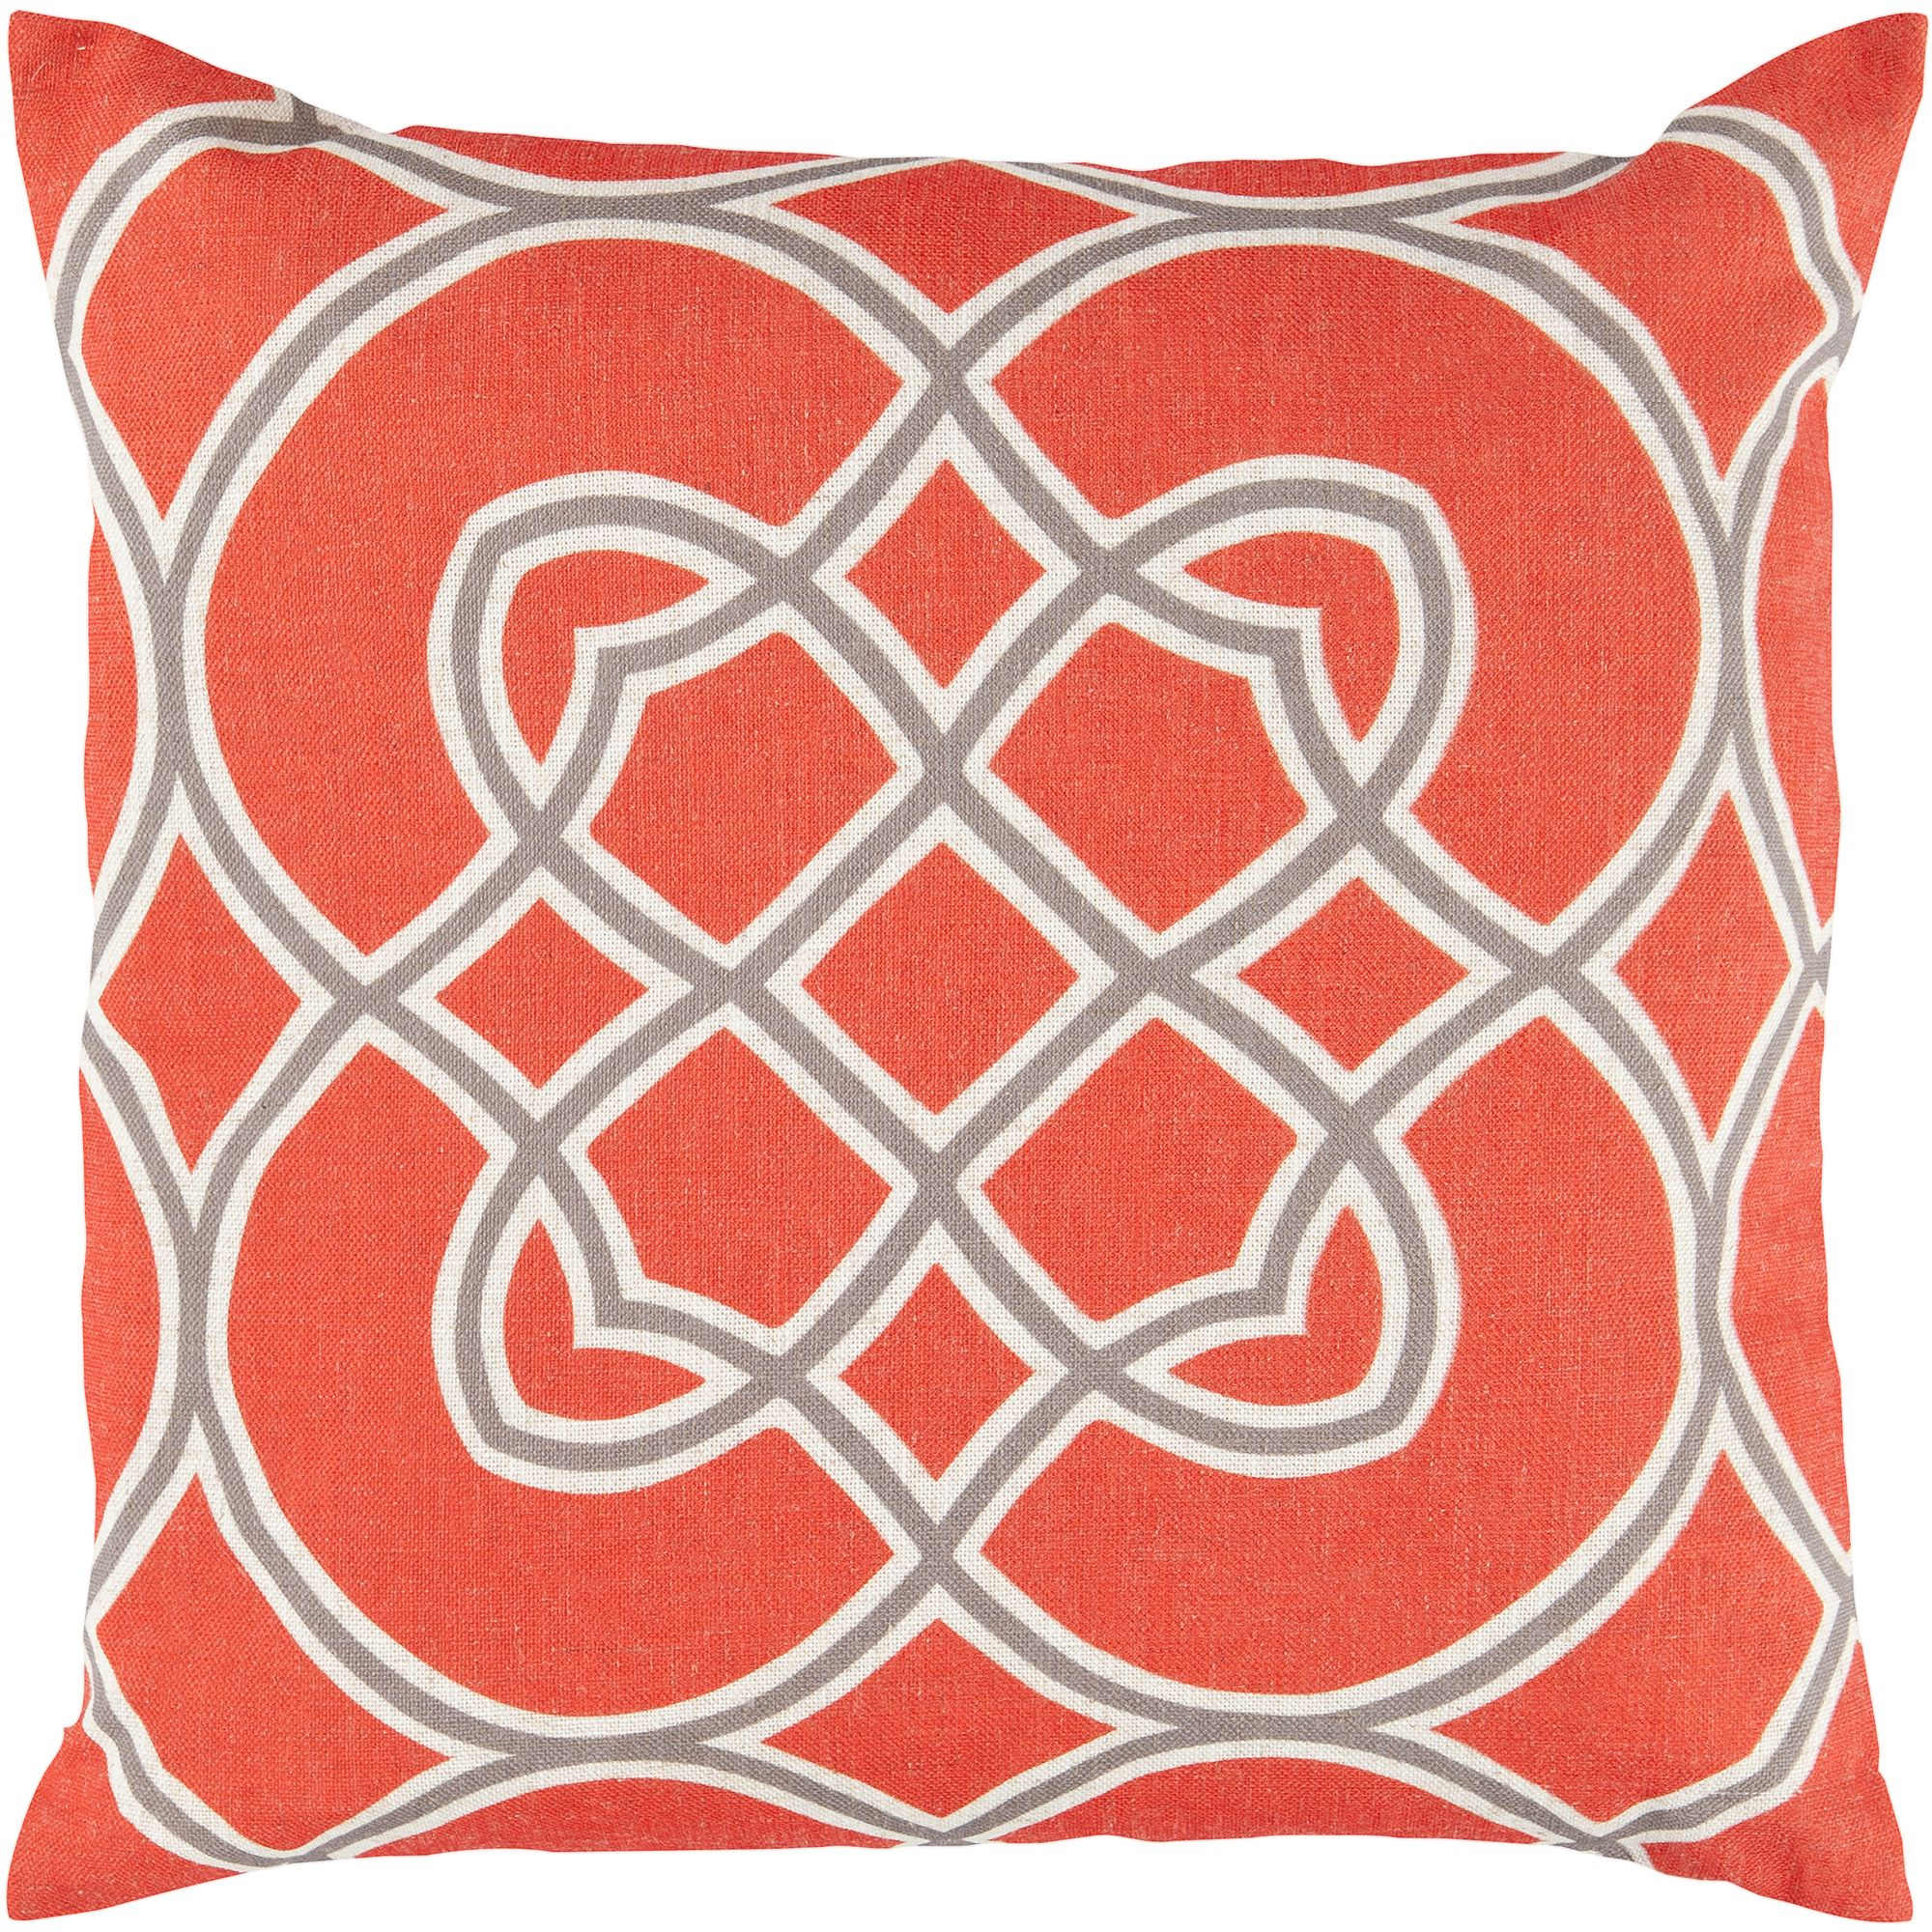 Art of Knot Brayton Hand Crafted Super Scroll Decorative Pillow with Poly Filler, Poppy